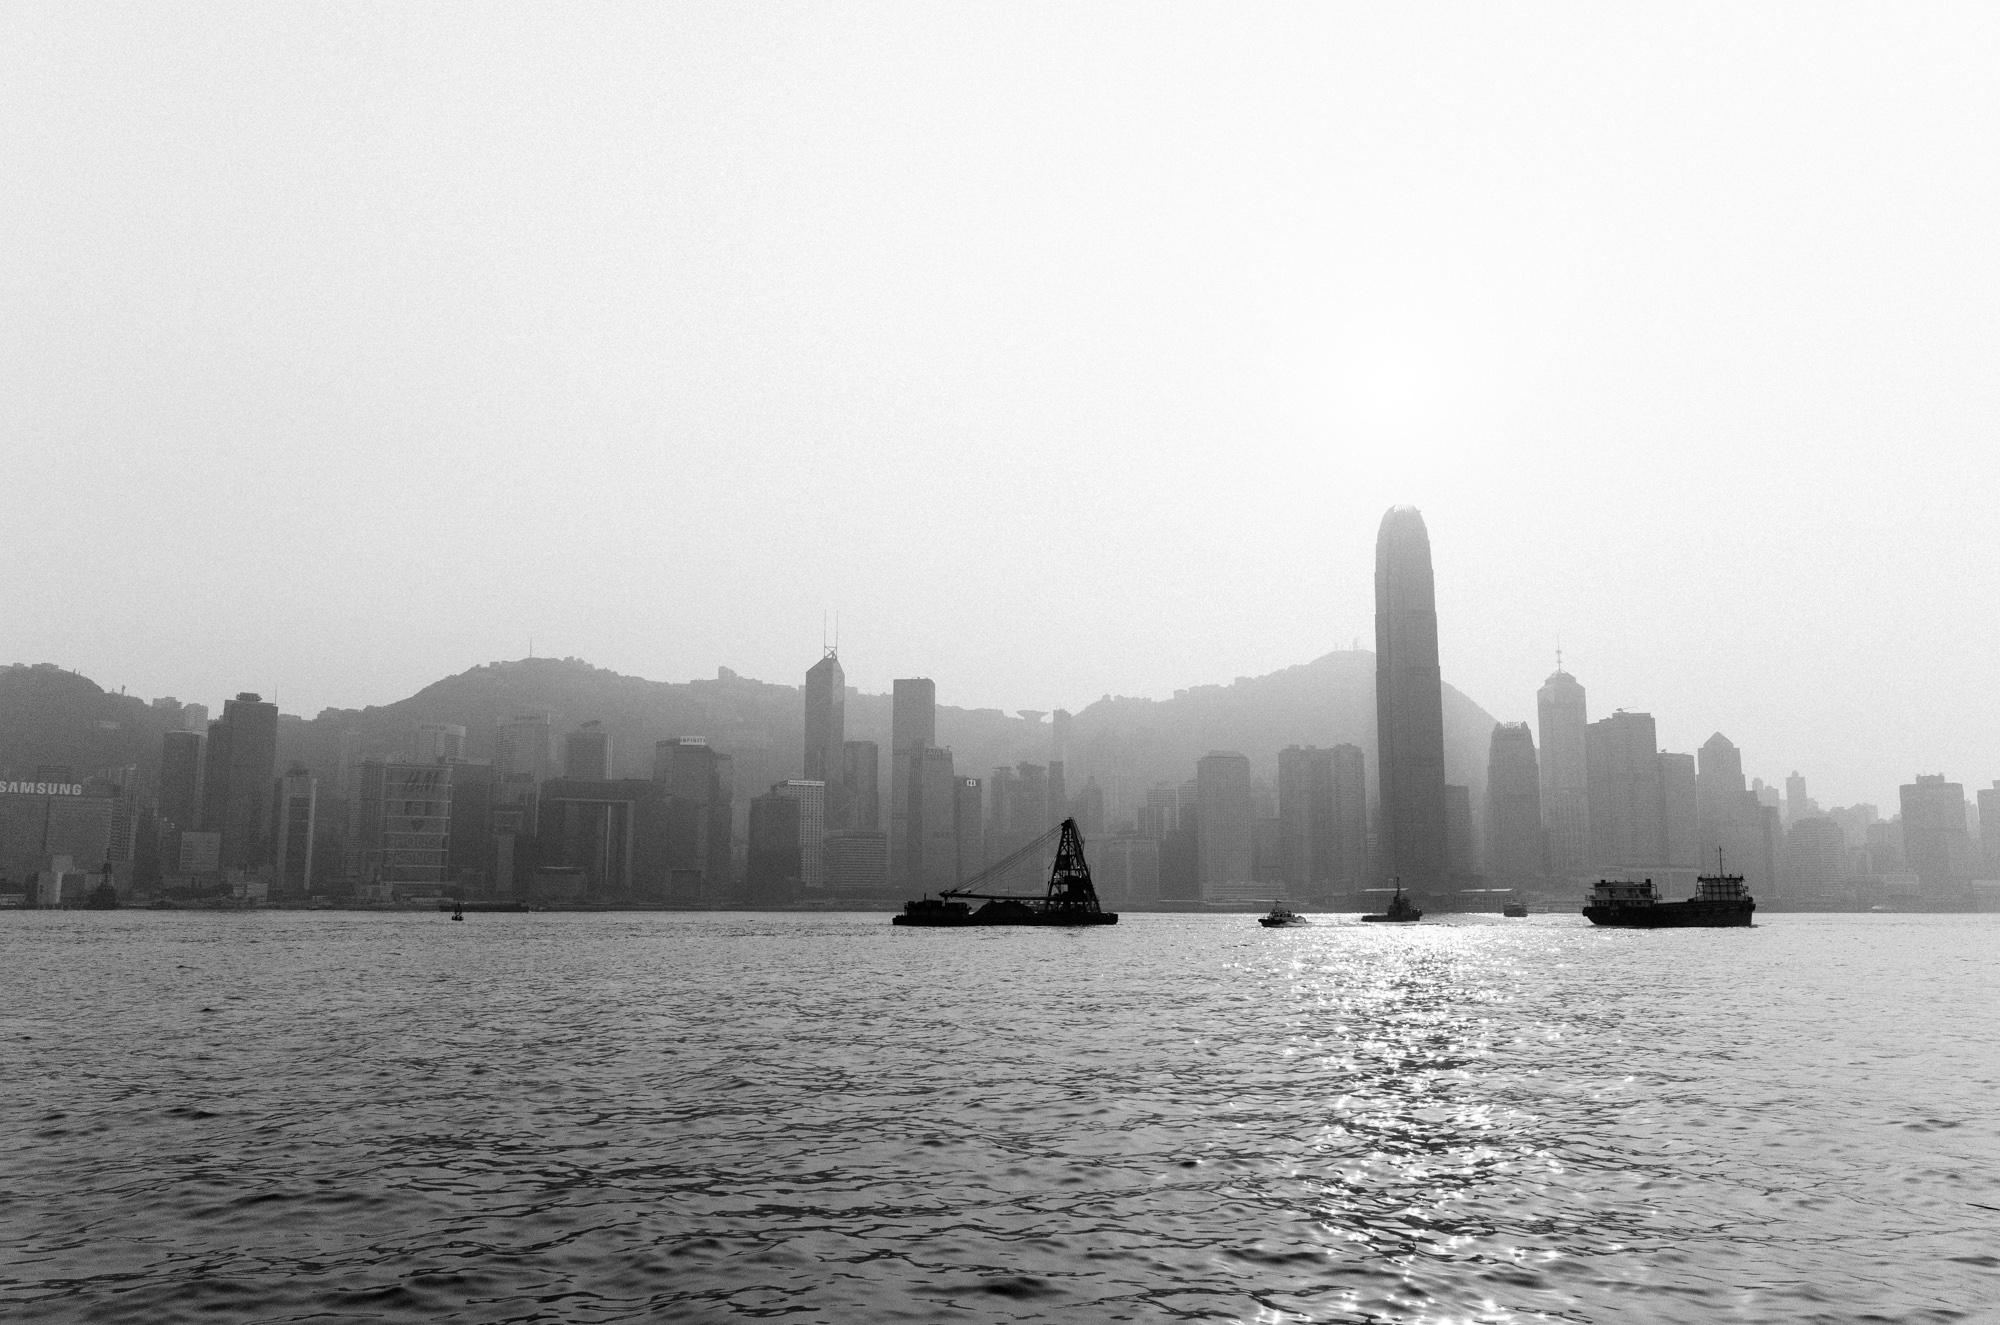 Hong Kong was never known for its pristine air quality. As a result, smog often curbs one's ability to clearly view the countless skyscrapers across the harbour.